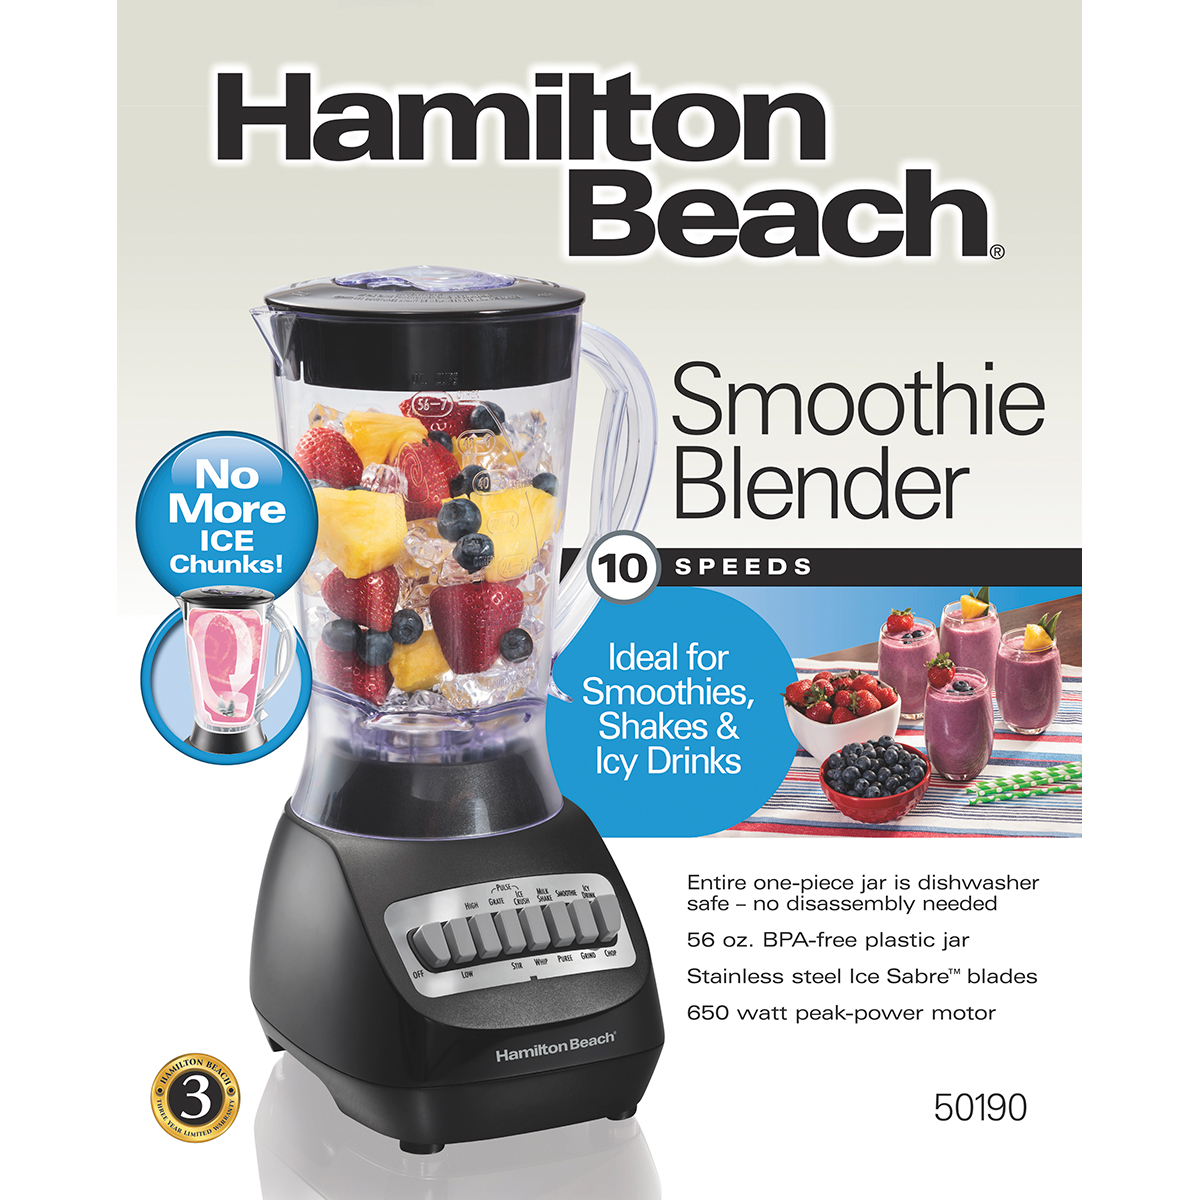 Smoothie Blender (50190)